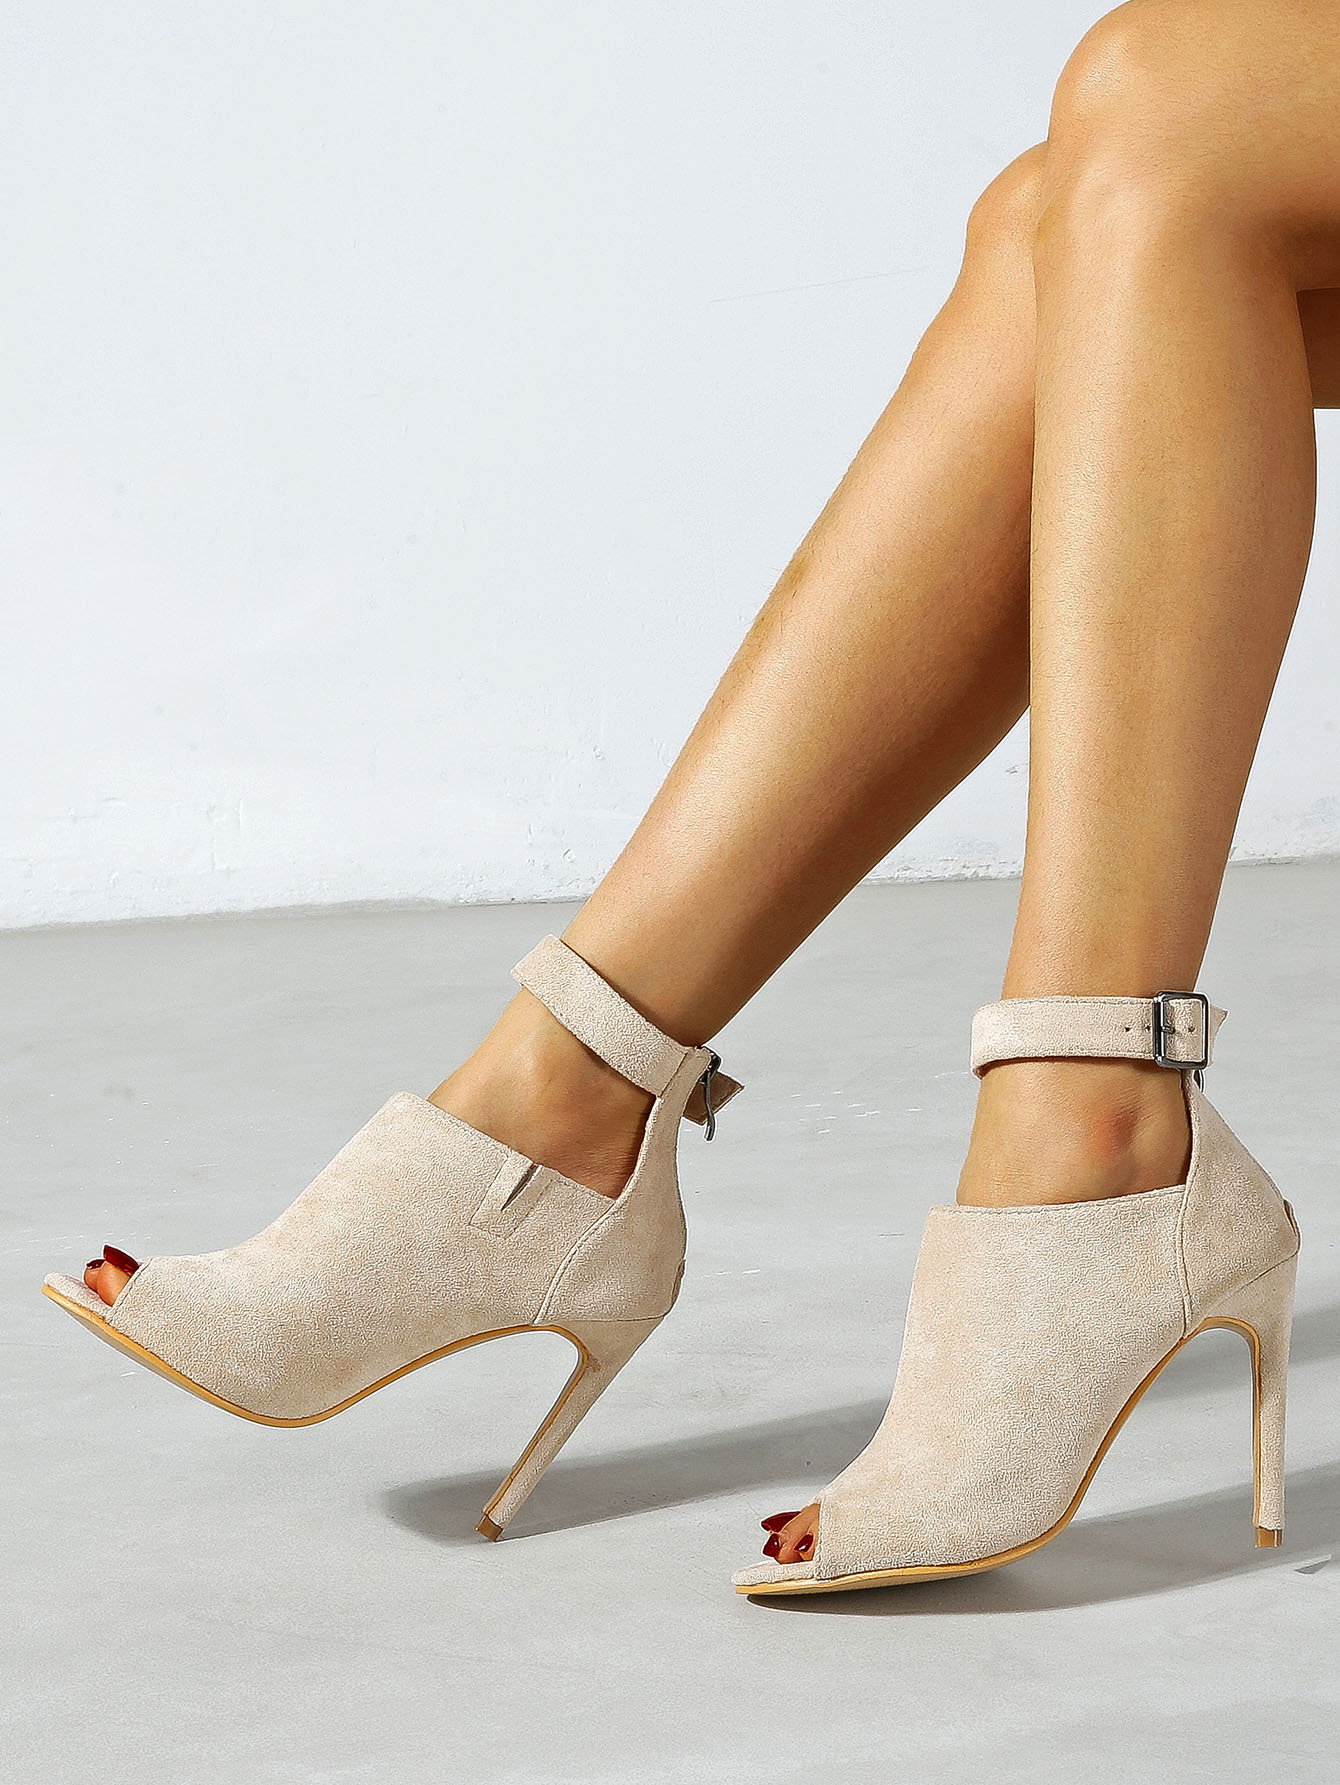 Suede Peep Toe Ankle Strap Heeled Sandal Boots